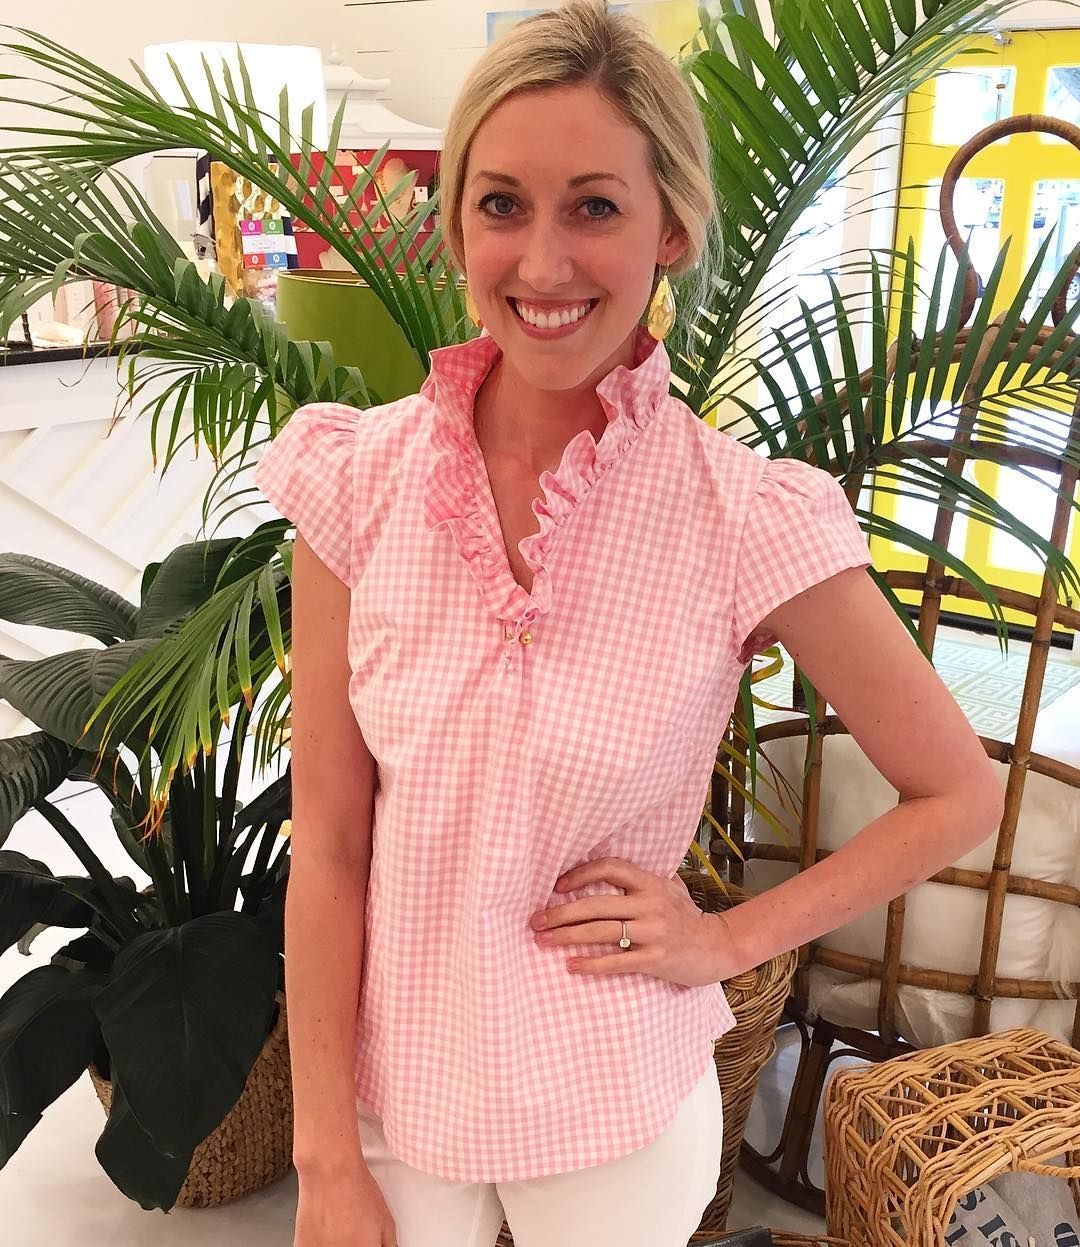 You'll be pretty in pink ruffles in this gorgeous gingham blouse from @elizabeth_mckay! So perfect for summer! #tfssi #stsimonsisland #seaisland #gingham #pink #prep #summer2016